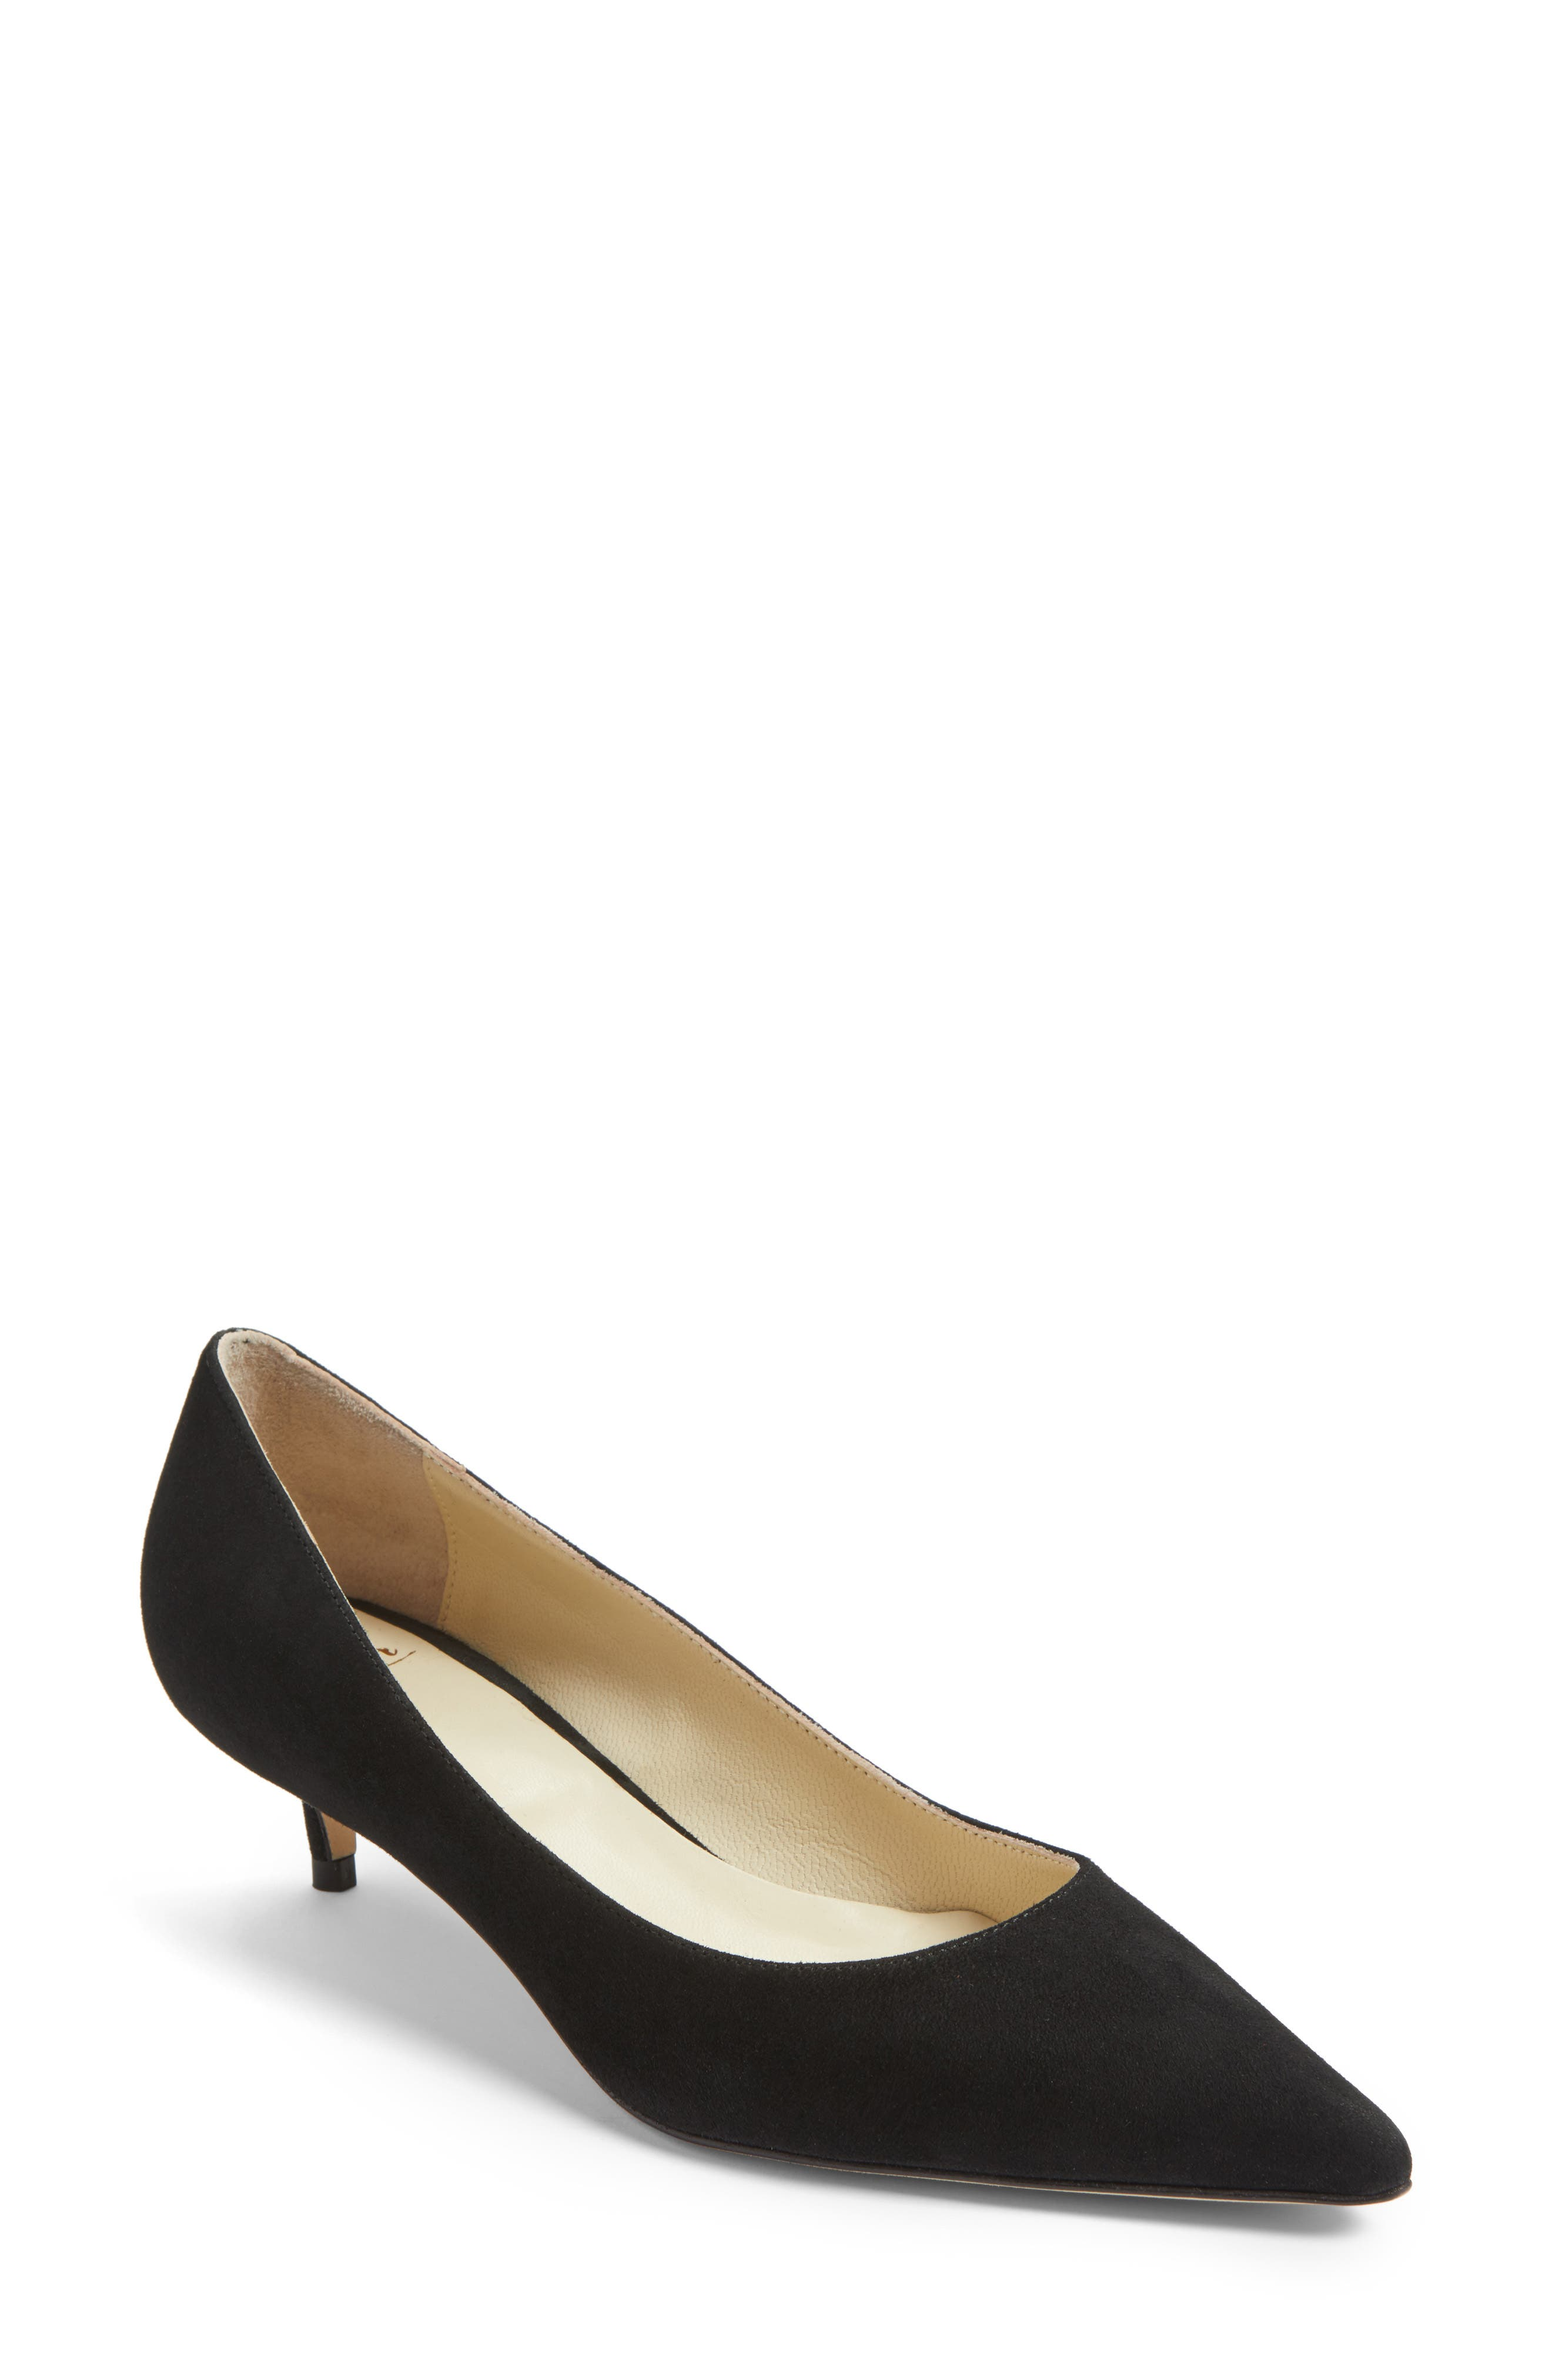 BUTTER SHOES,                             Butter Born Pointy Toe Pump,                             Main thumbnail 1, color,                             001